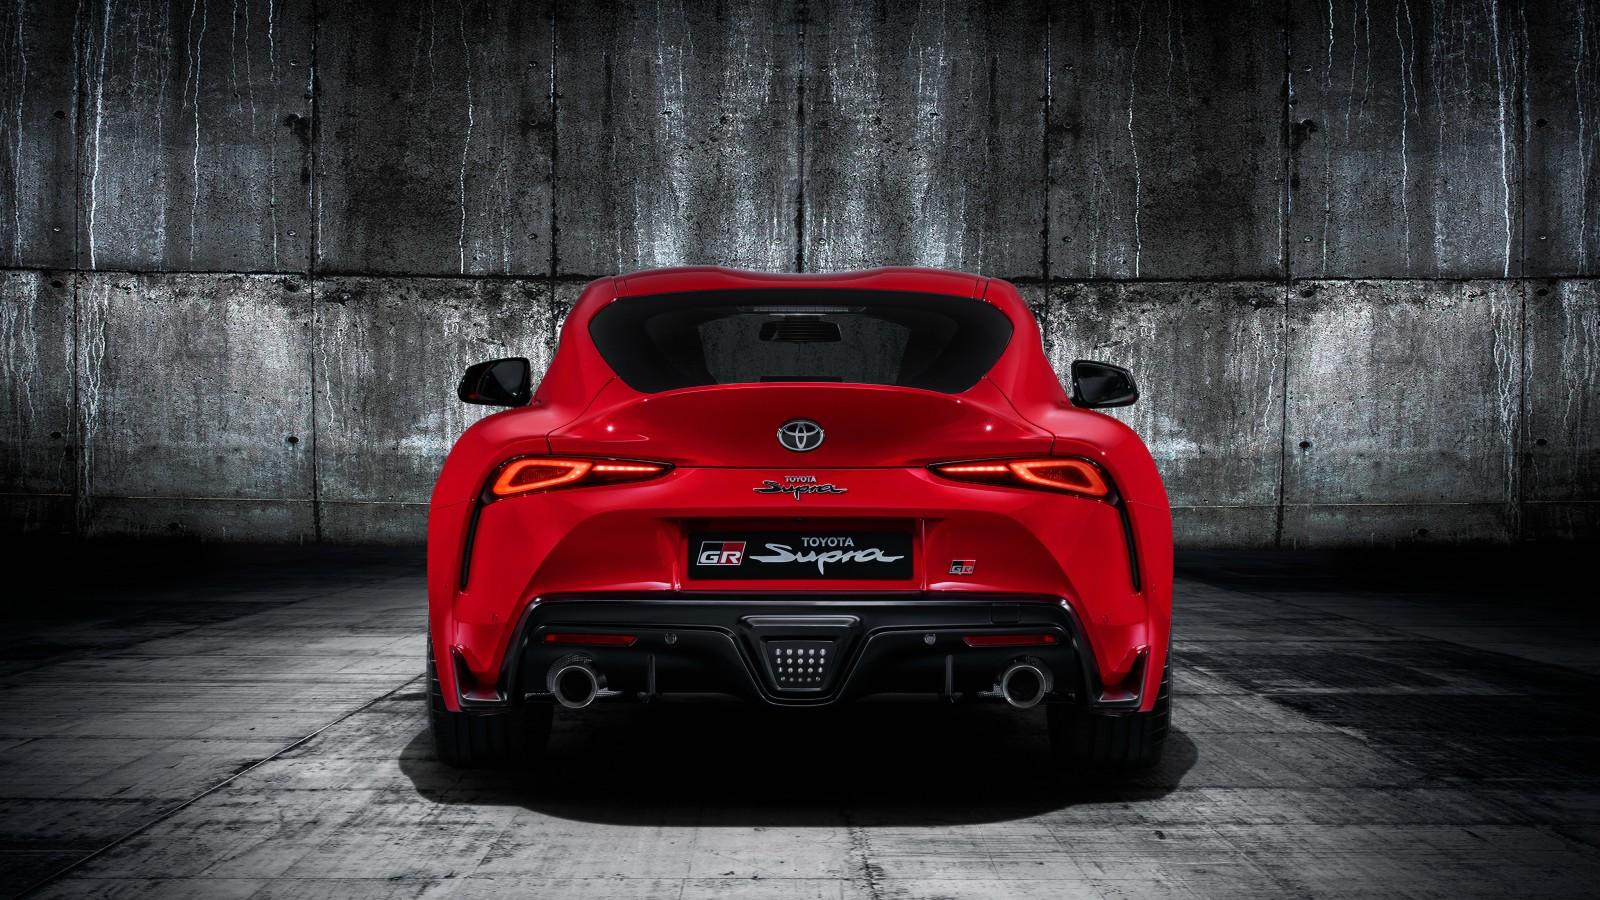 Toyota GR Supra 2019 4K 3 Wallpaper | HD Car Wallpapers ...